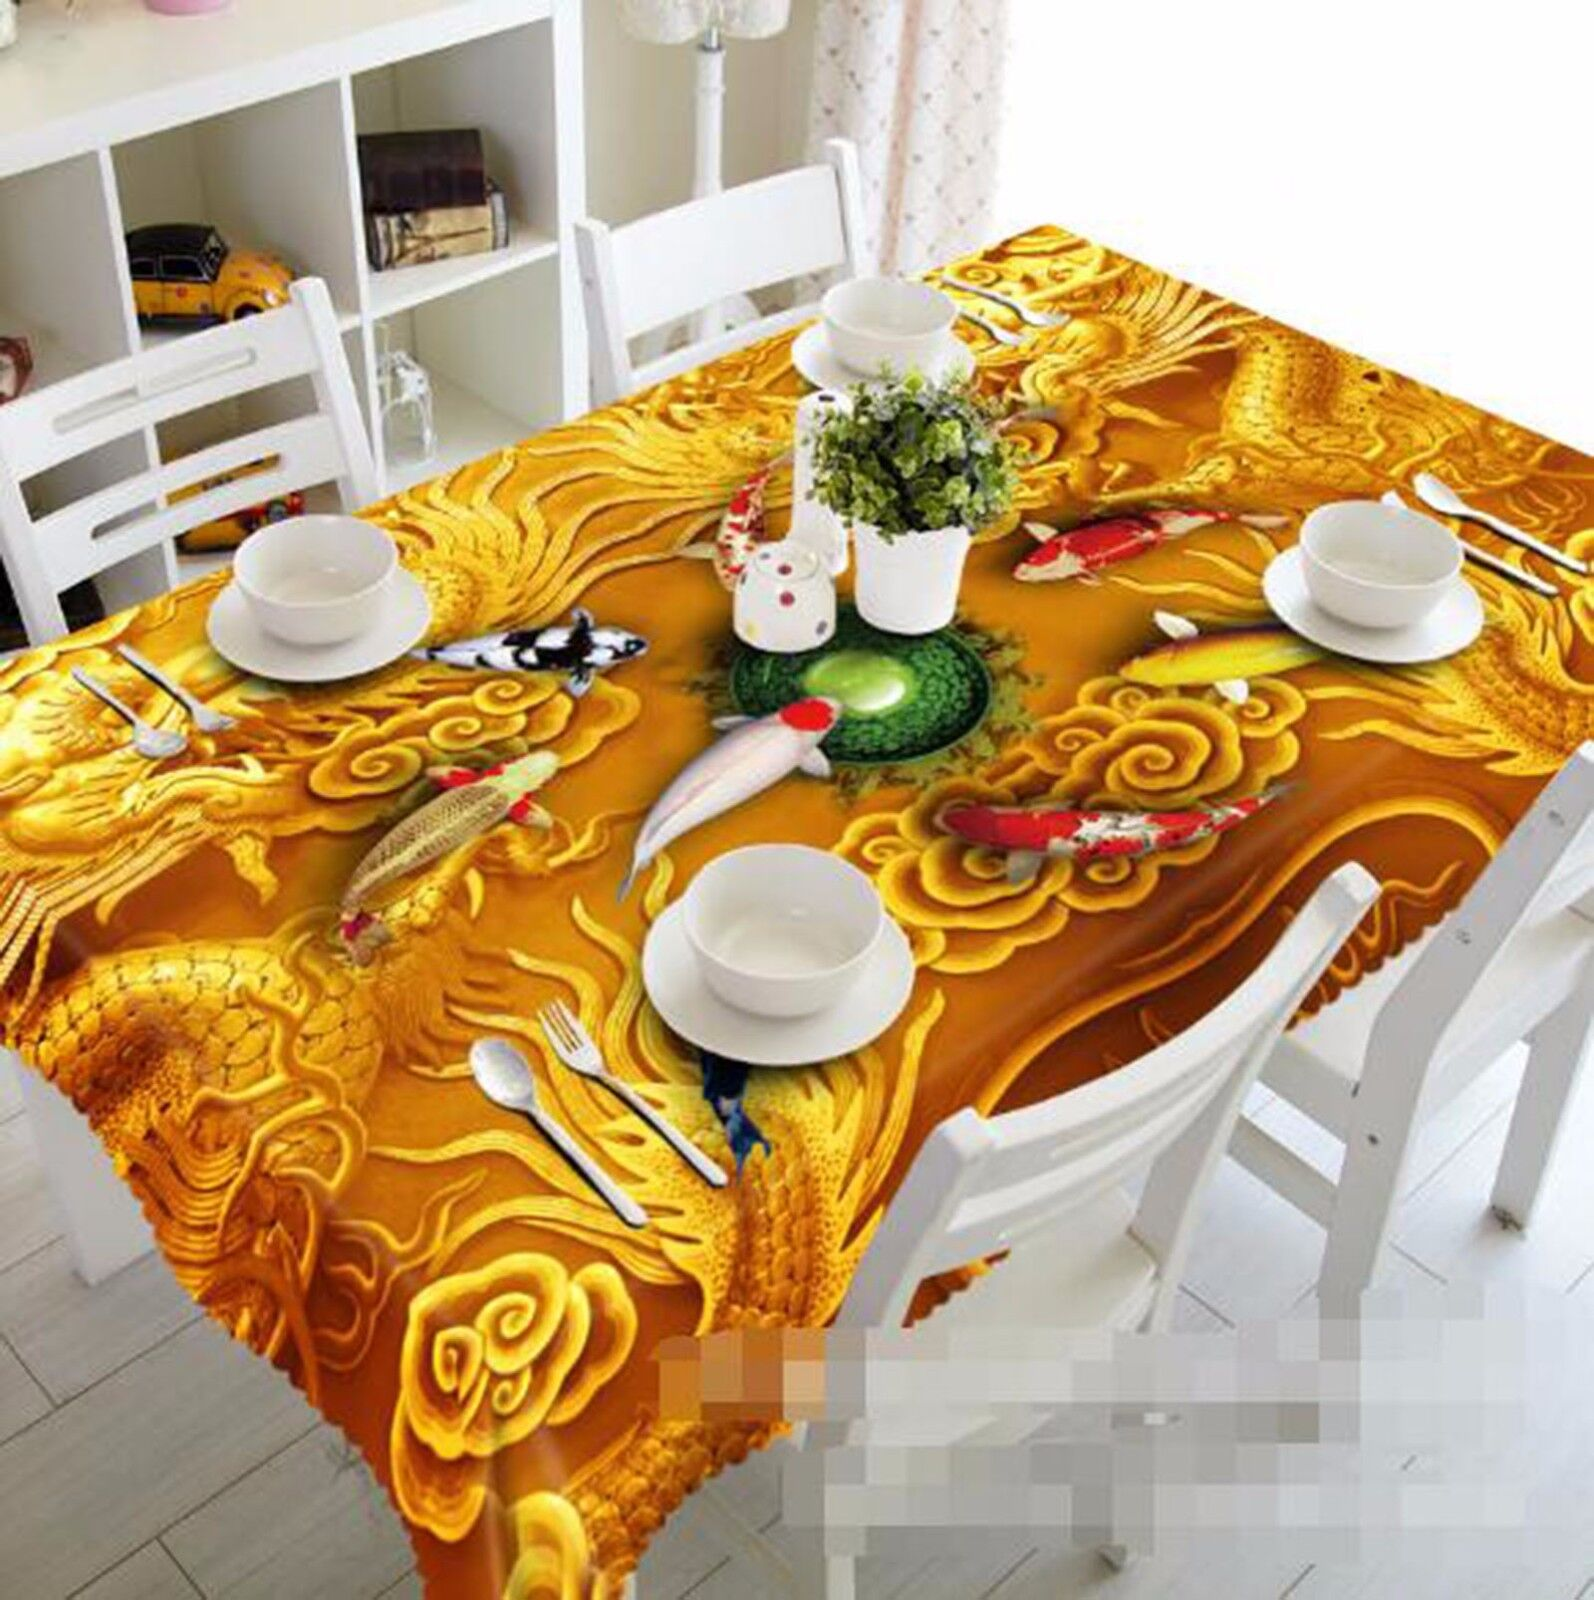 3D Carp 62 Nappe Table Cover Cloth fête d'anniversaire AJ papier peint Royaume-Uni Citron